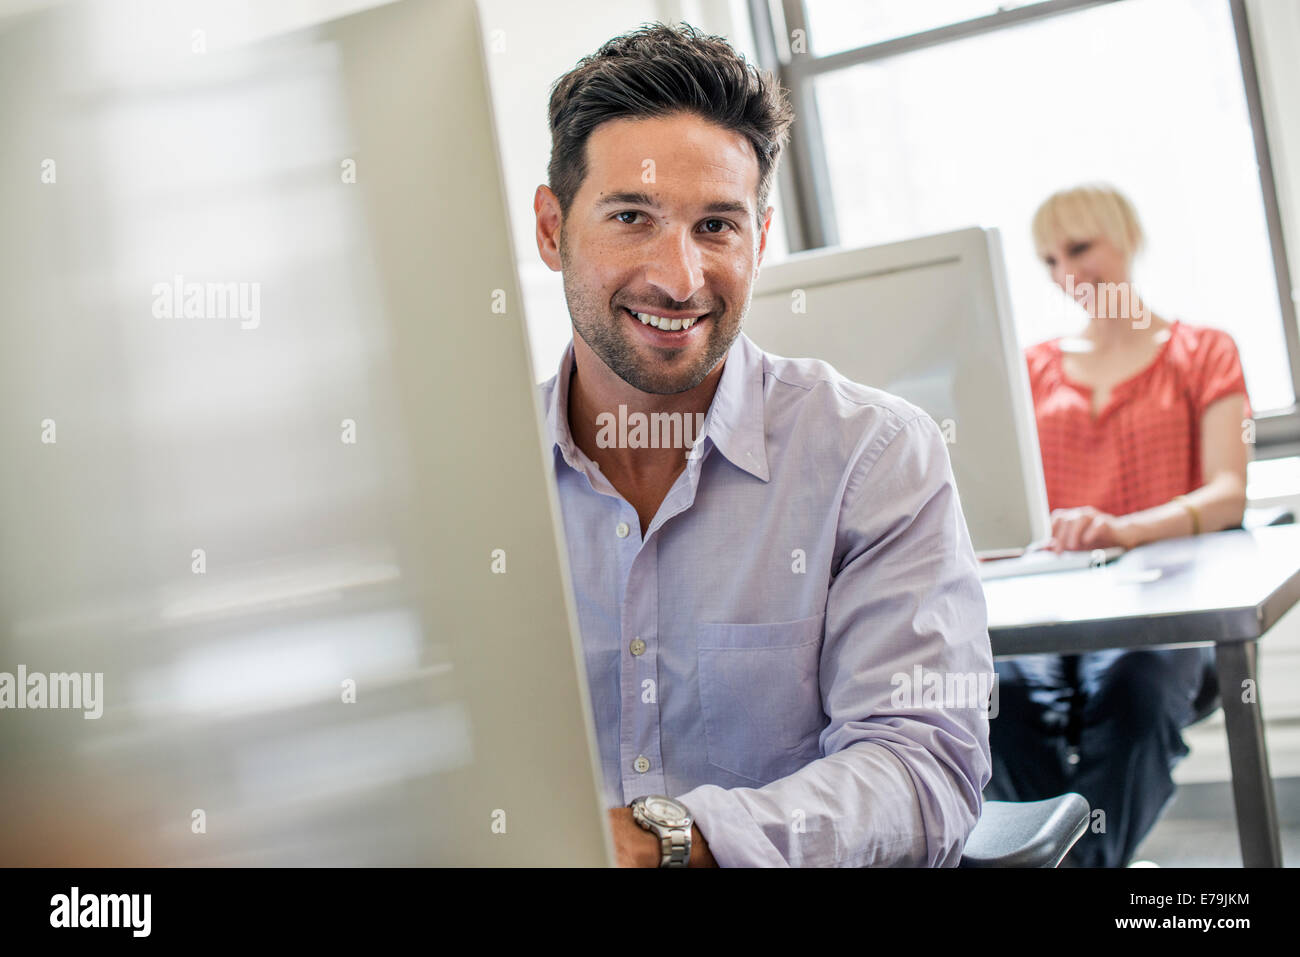 Two People Immagini  Two People Fotos Stock  Alamy